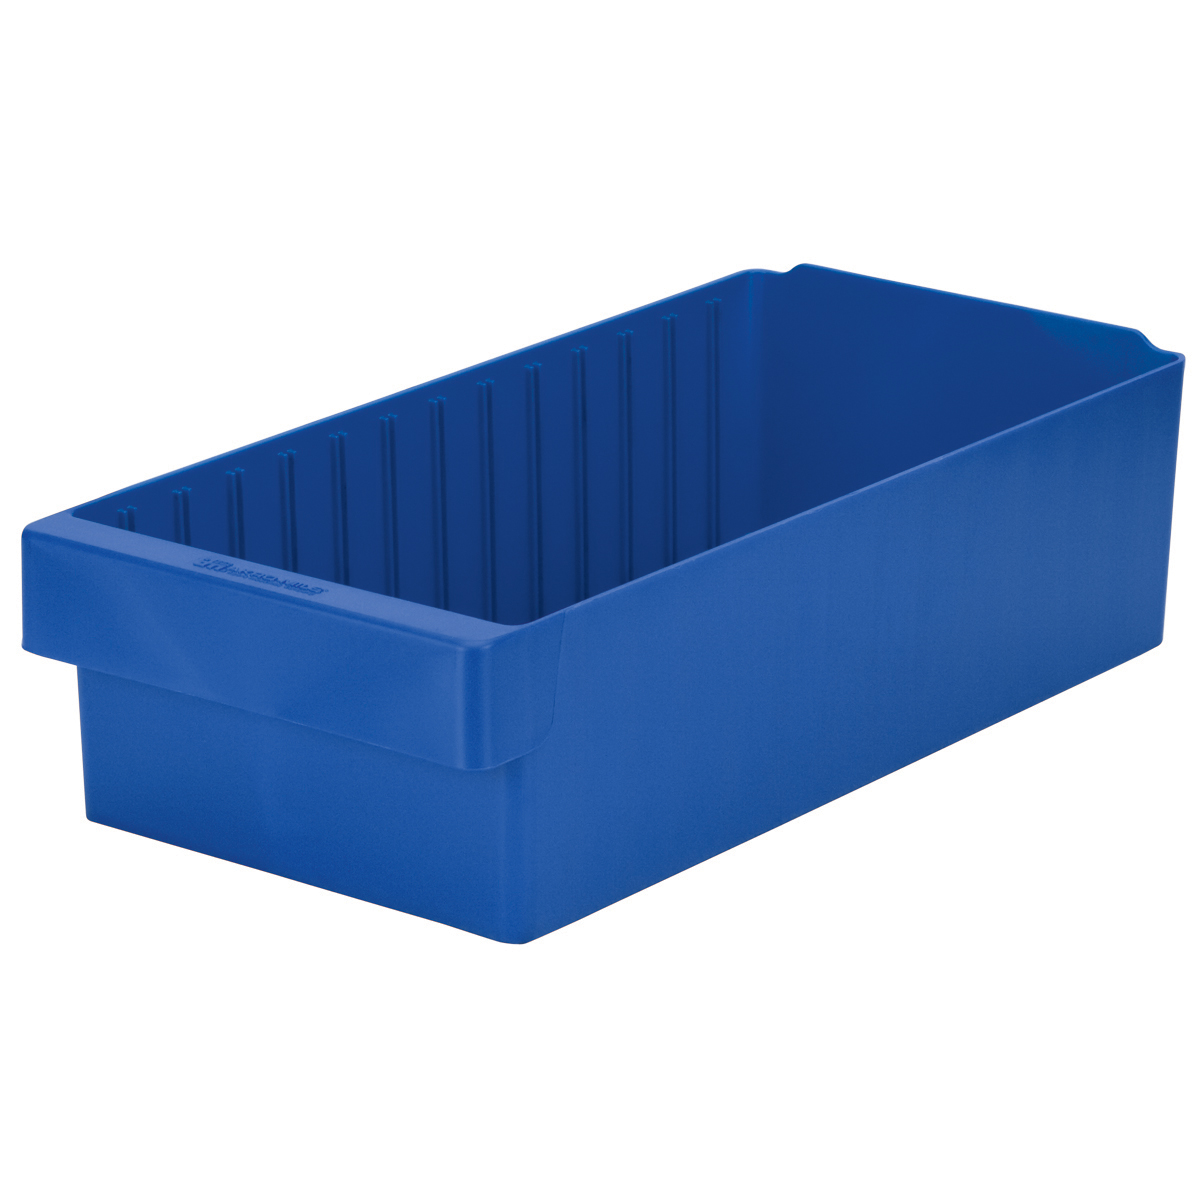 AkroDrawer 17-5/8 x 8-3/8 x 4-5/8, Blue (31188BLU).  This item sold in carton quantities of 4.